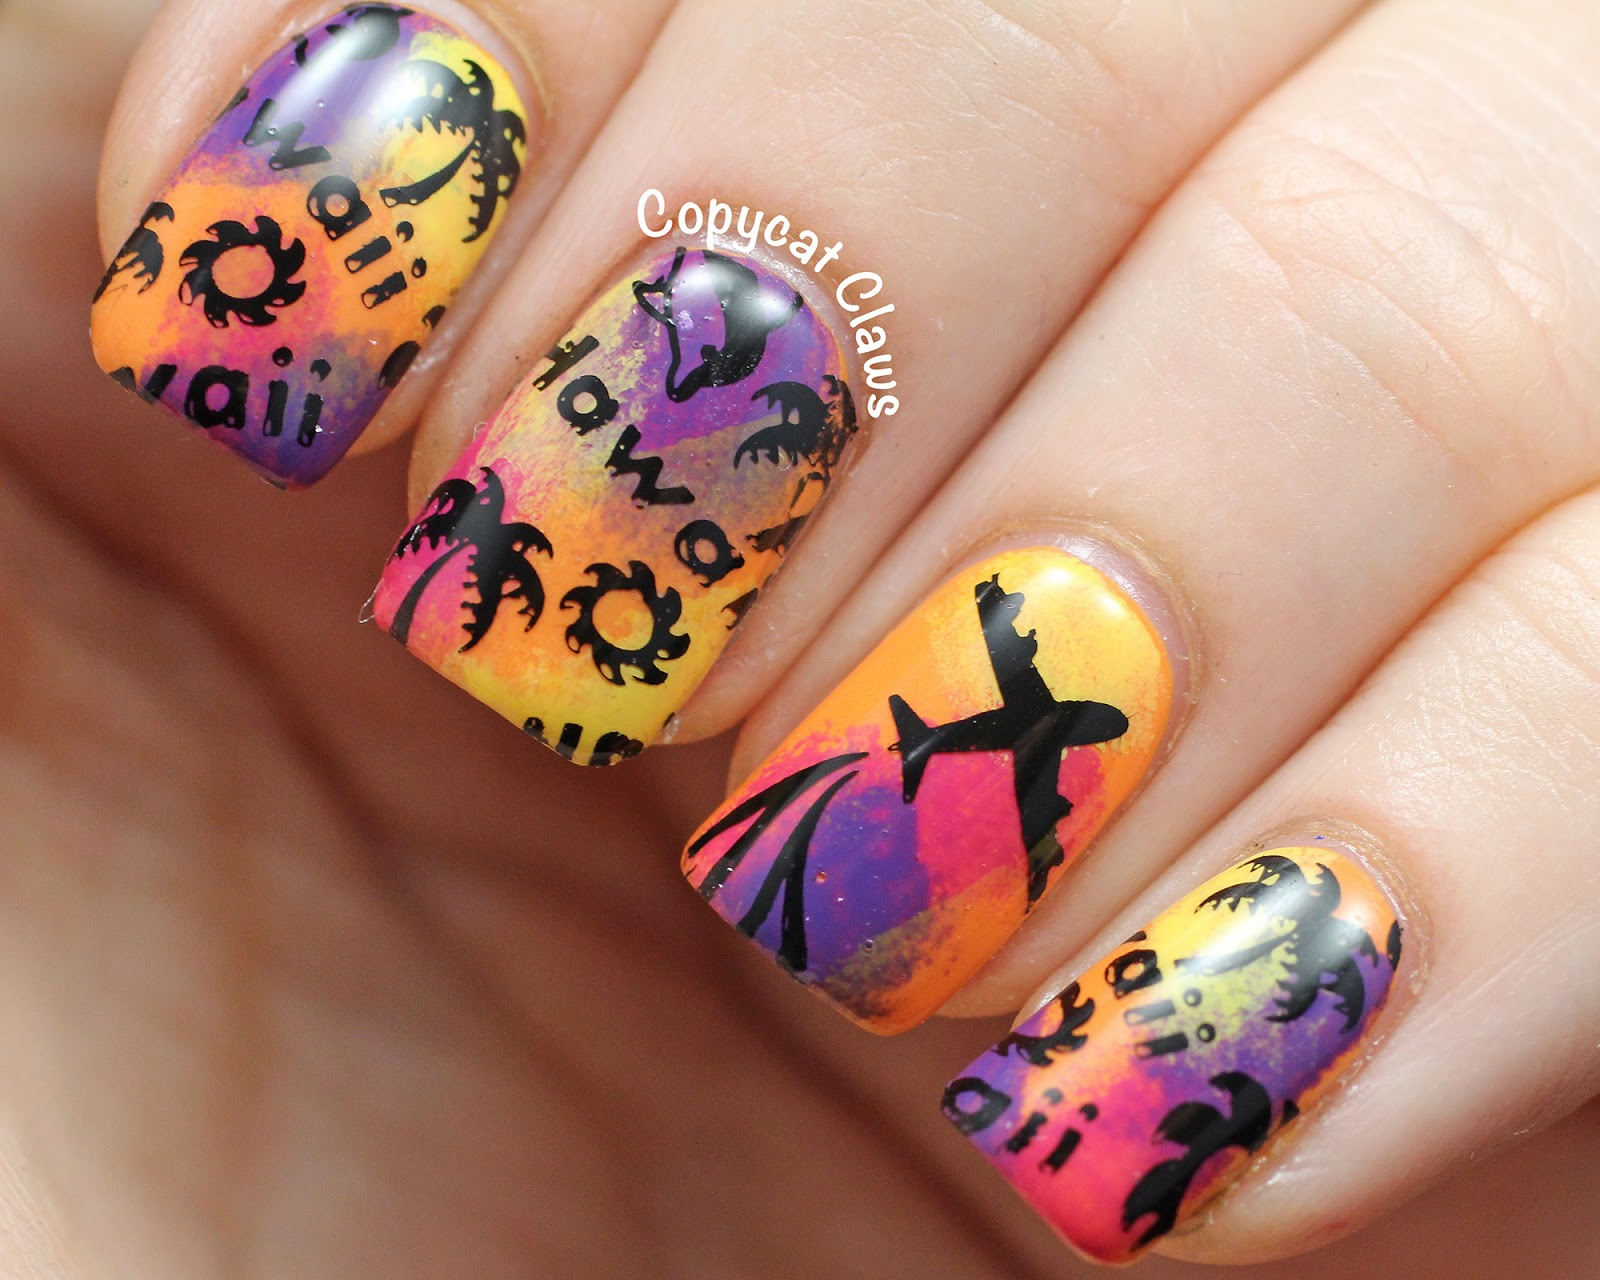 Hawaii nail art aol image search results prinsesfo Gallery